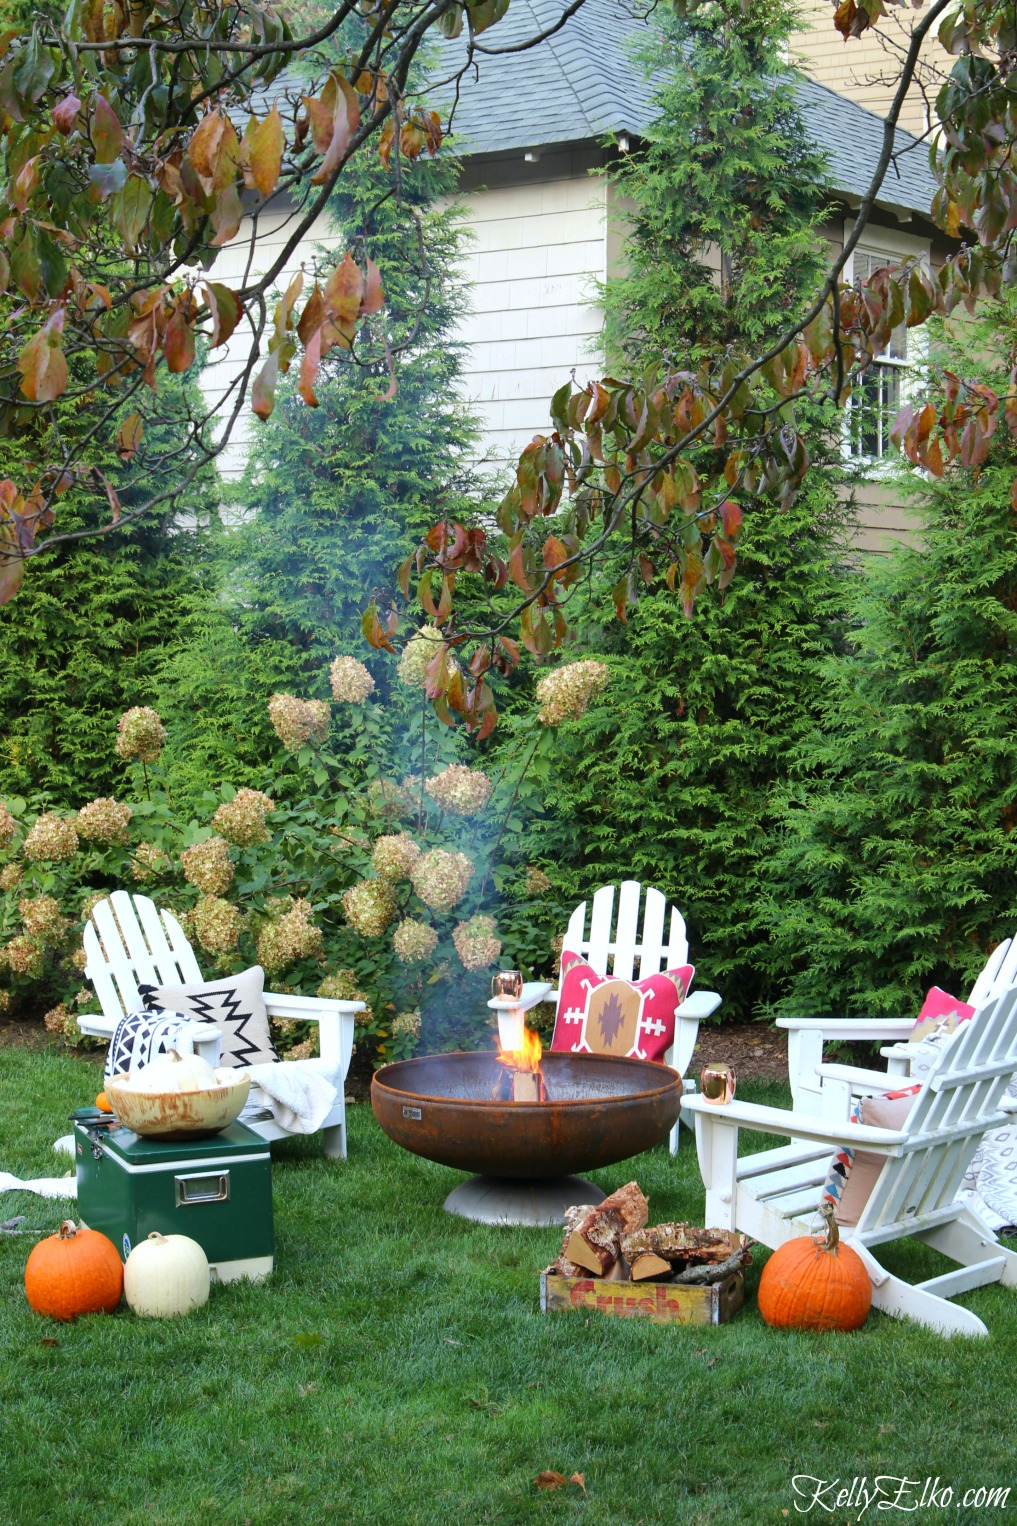 Love this fire pit surrounded by adirondack chairs piled high with boho throws and pillows kellyelko.com